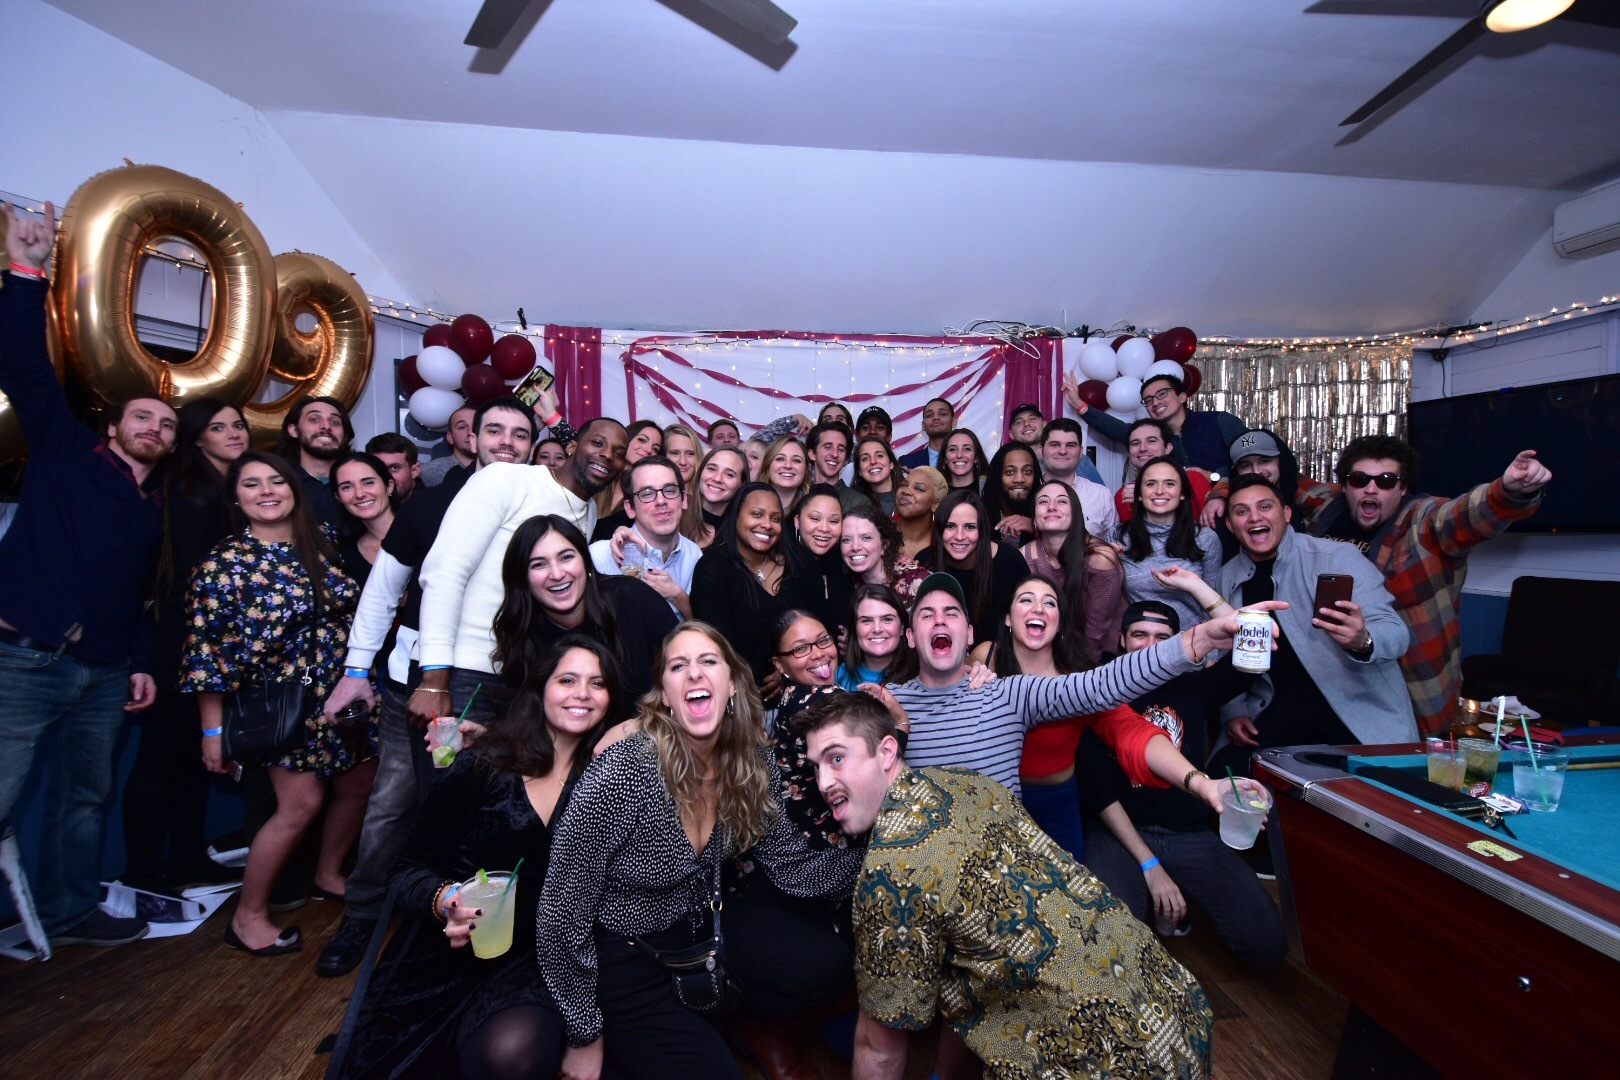 Members of the Southampton High School Class of 2009 gathered for its 10-year reunion on November 29 at the North Sea Tavern.